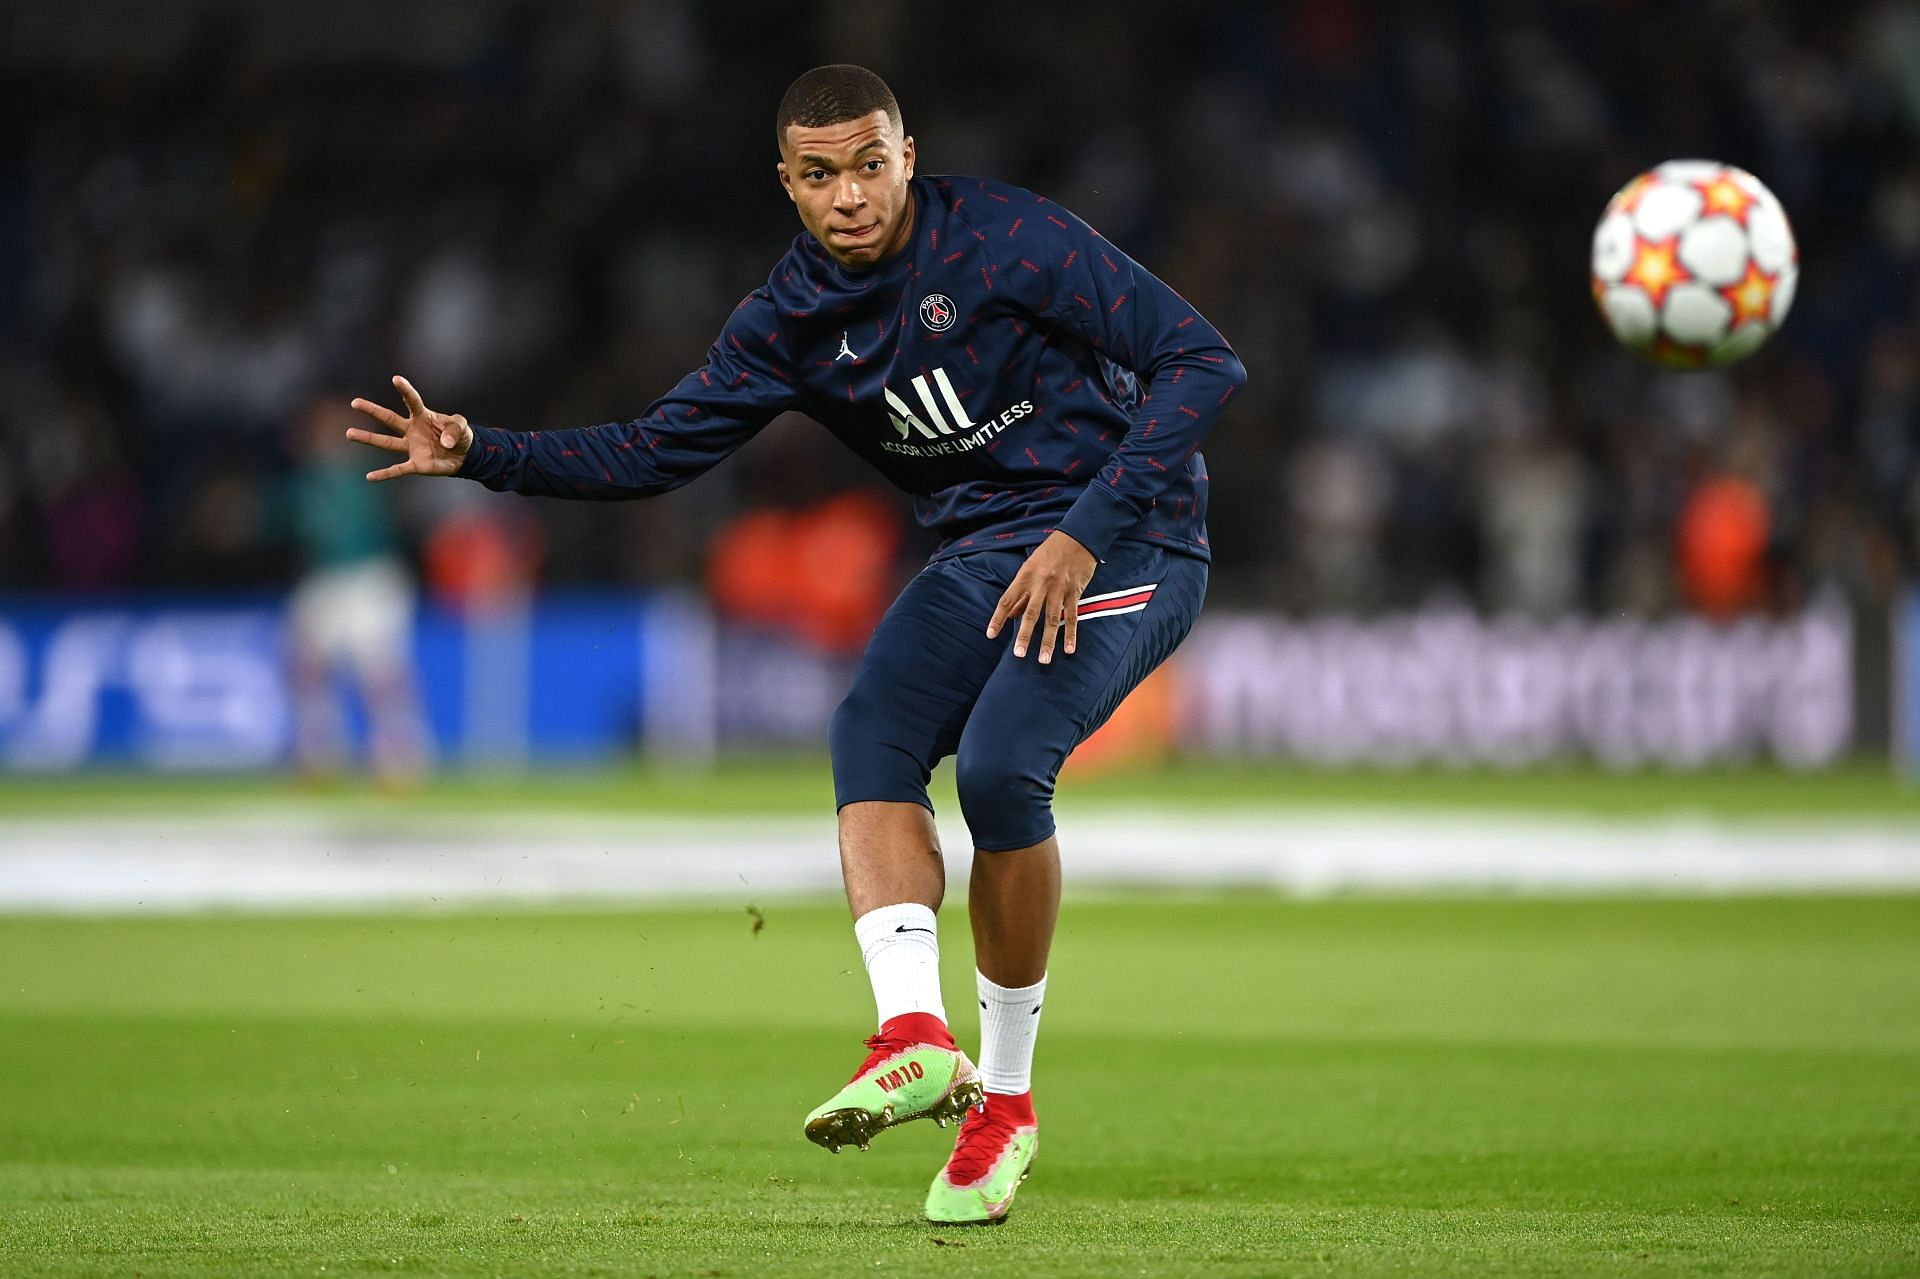 Real Madrid remain interested in luring Kylian Mbappe from PSG